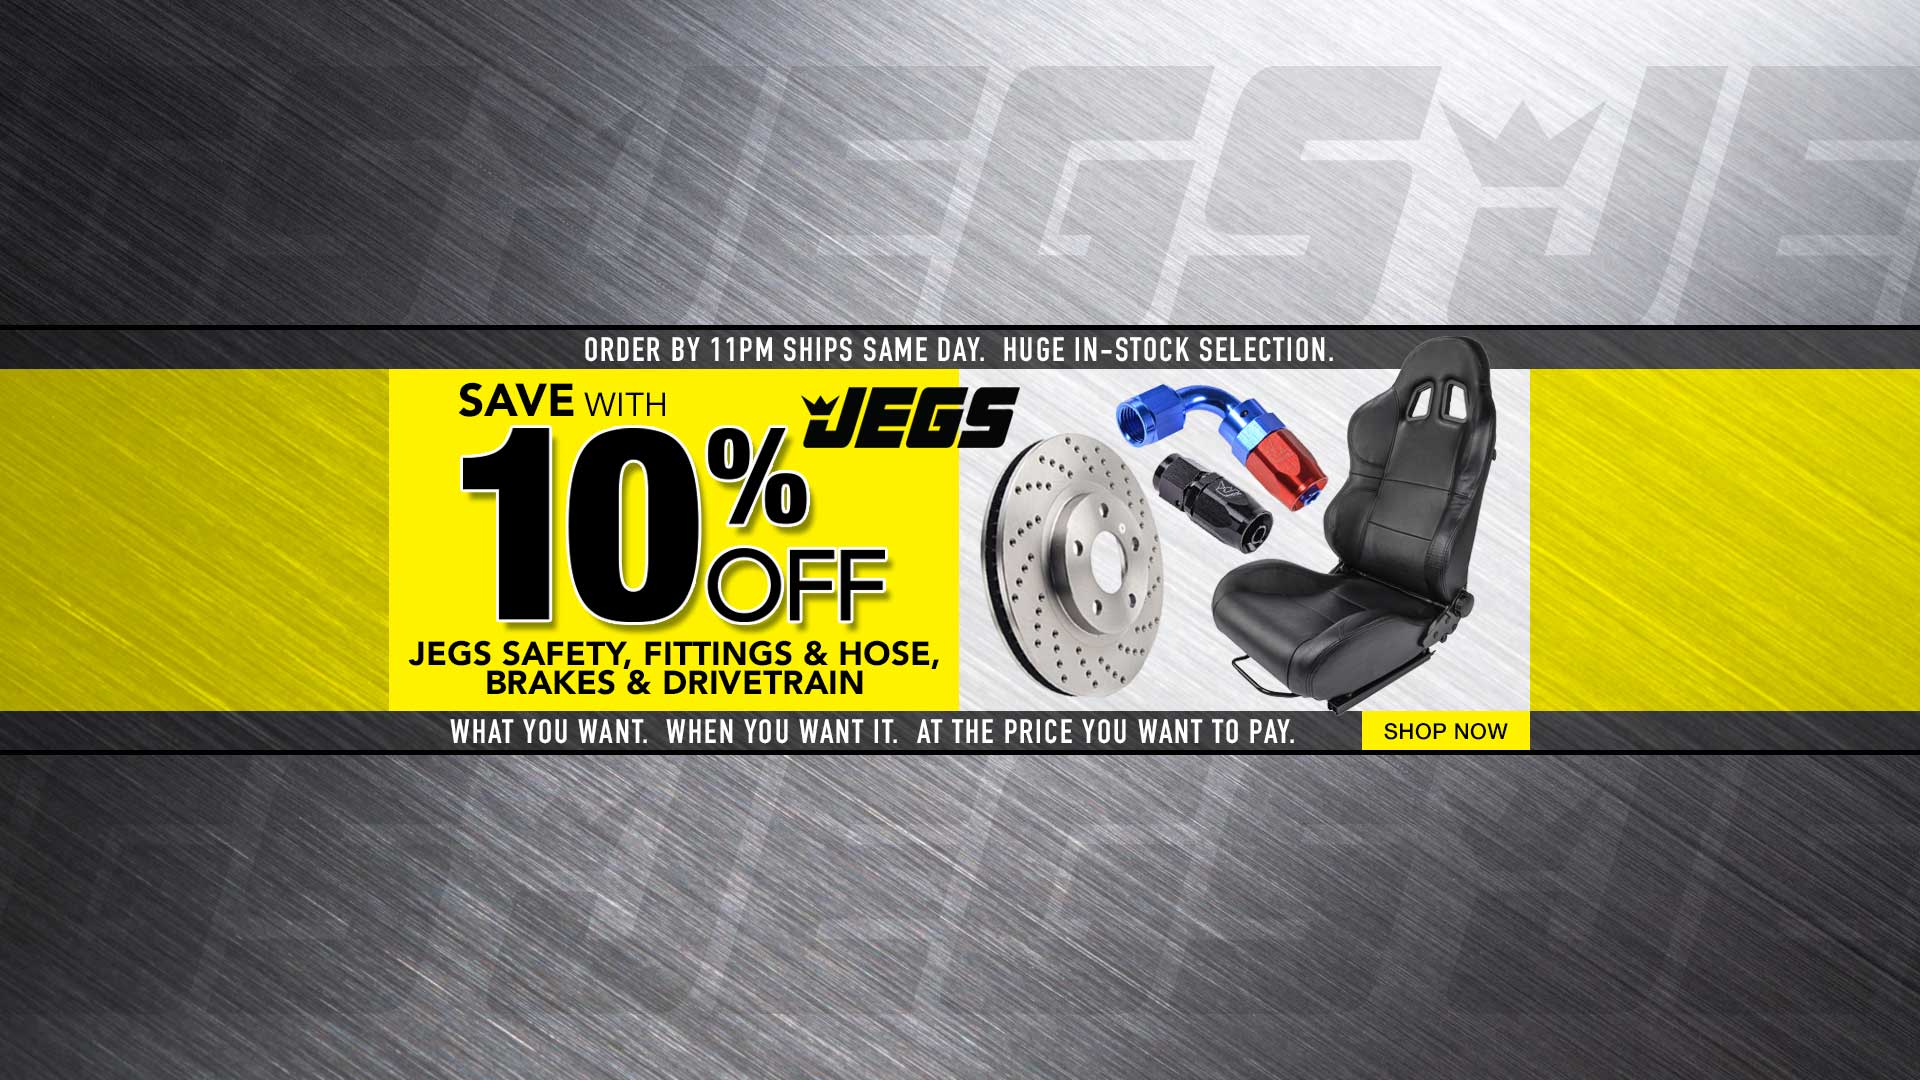 10% off JEGS Safety, Fitting & Hose, and Brakes & Drivetrain